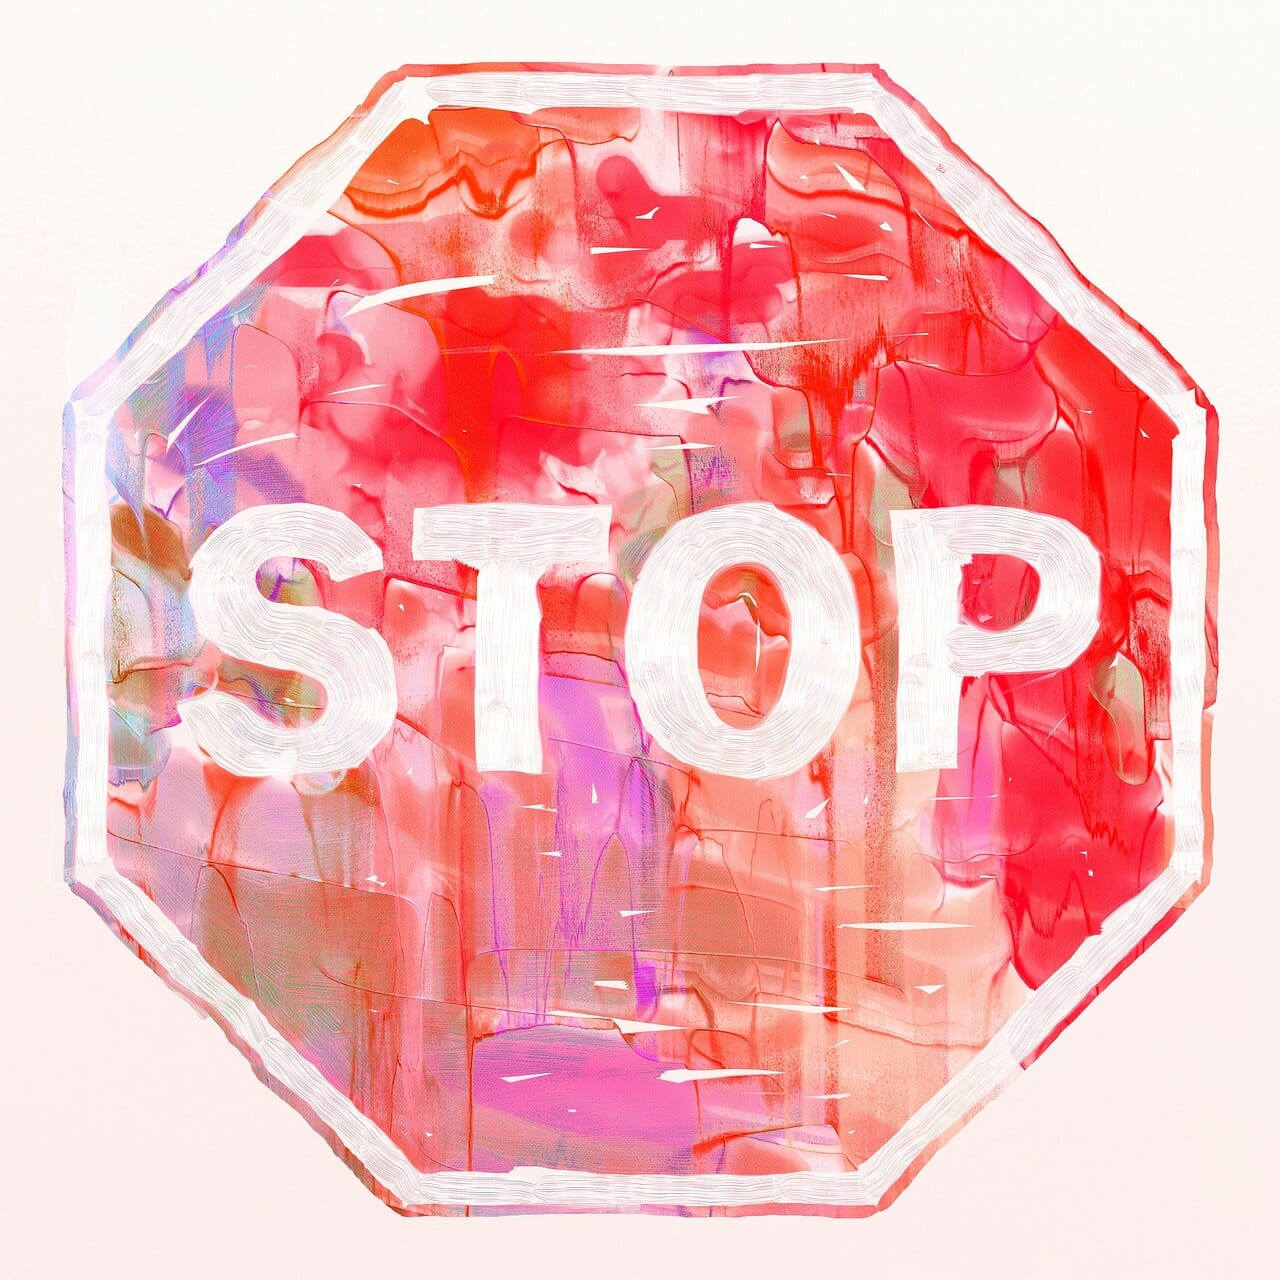 sosmisposo-cartello-stop